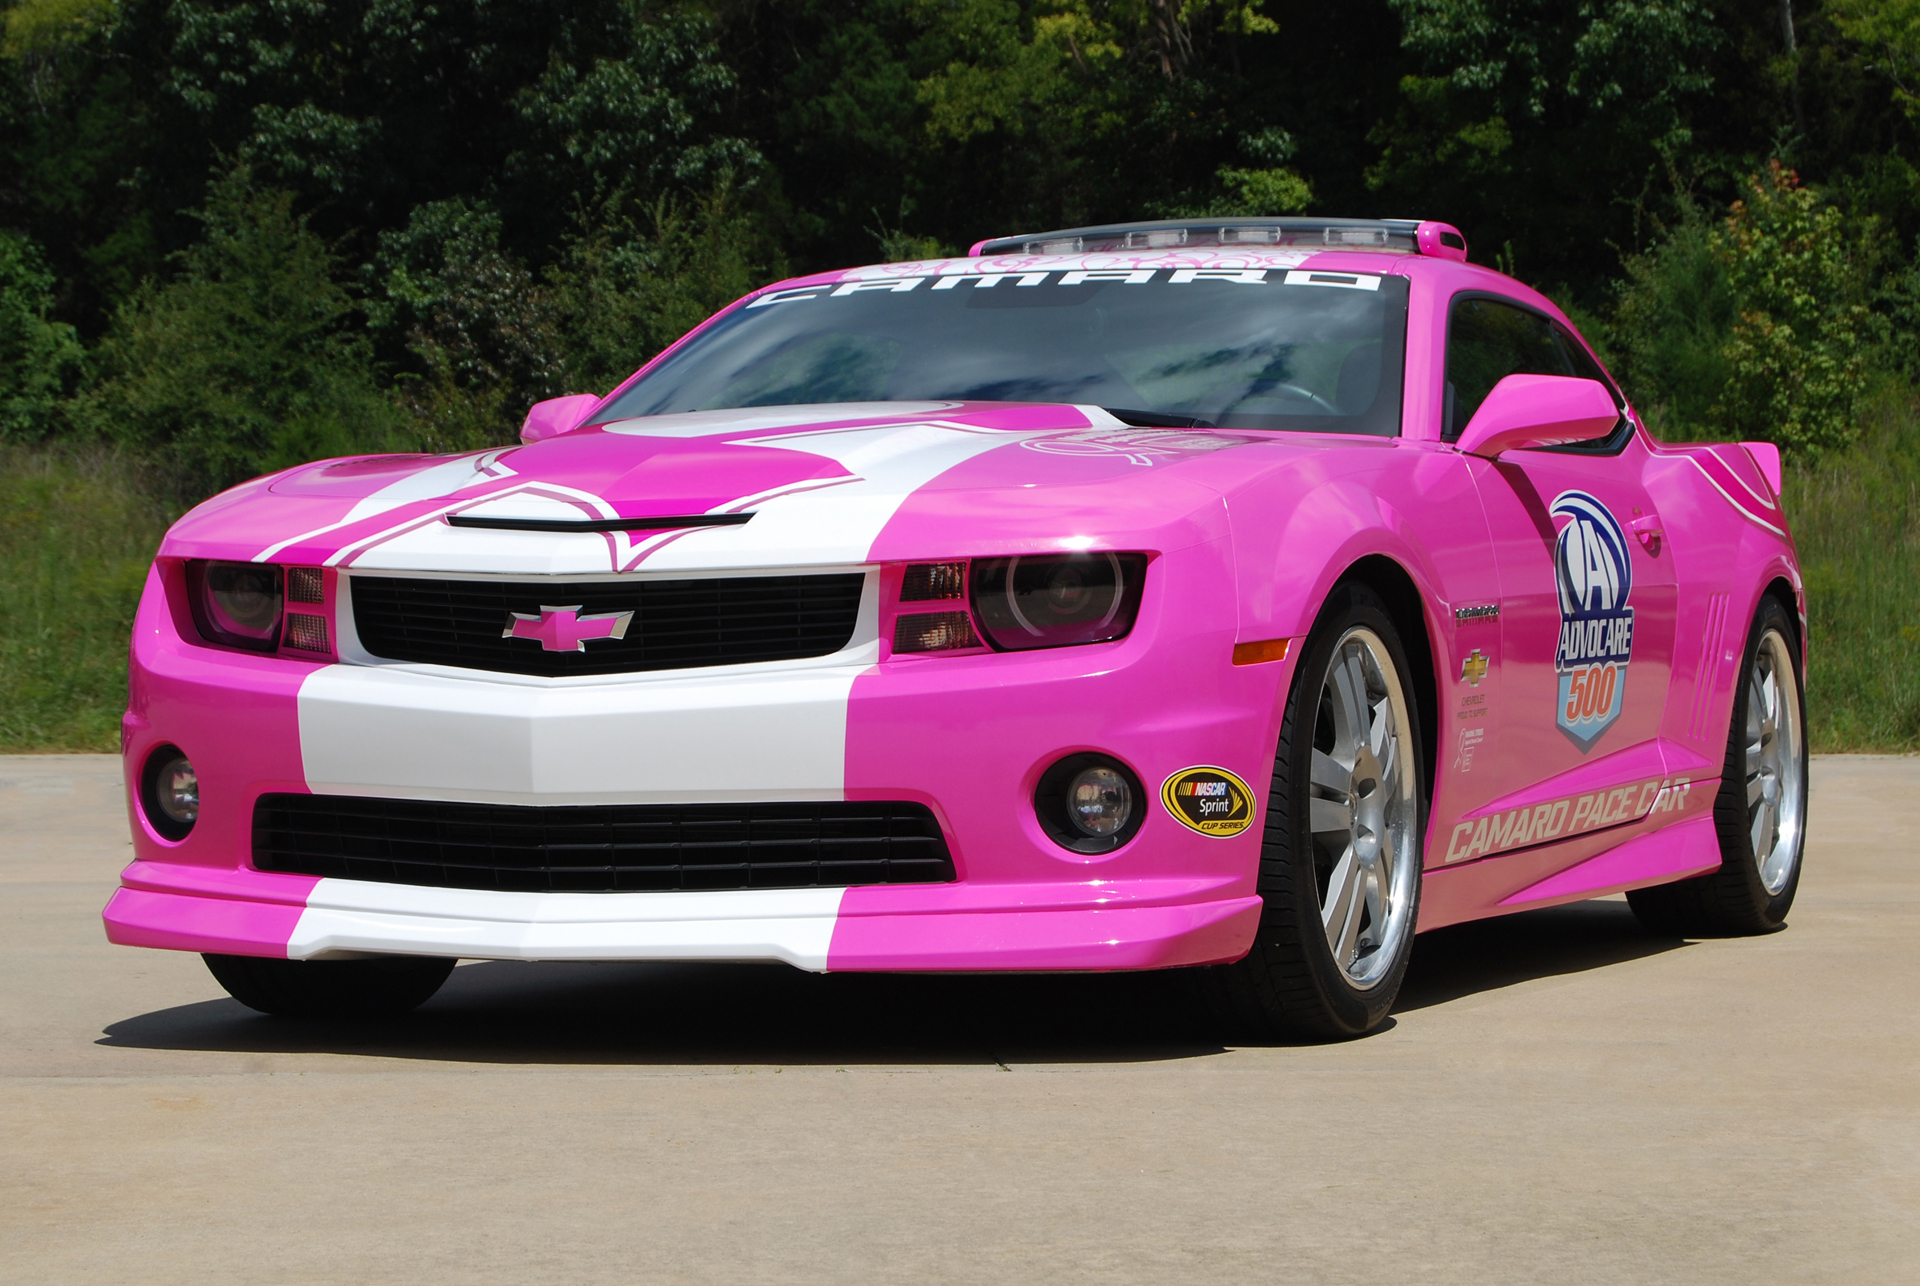 2012 chevrolet camaro ss pace car. Black Bedroom Furniture Sets. Home Design Ideas